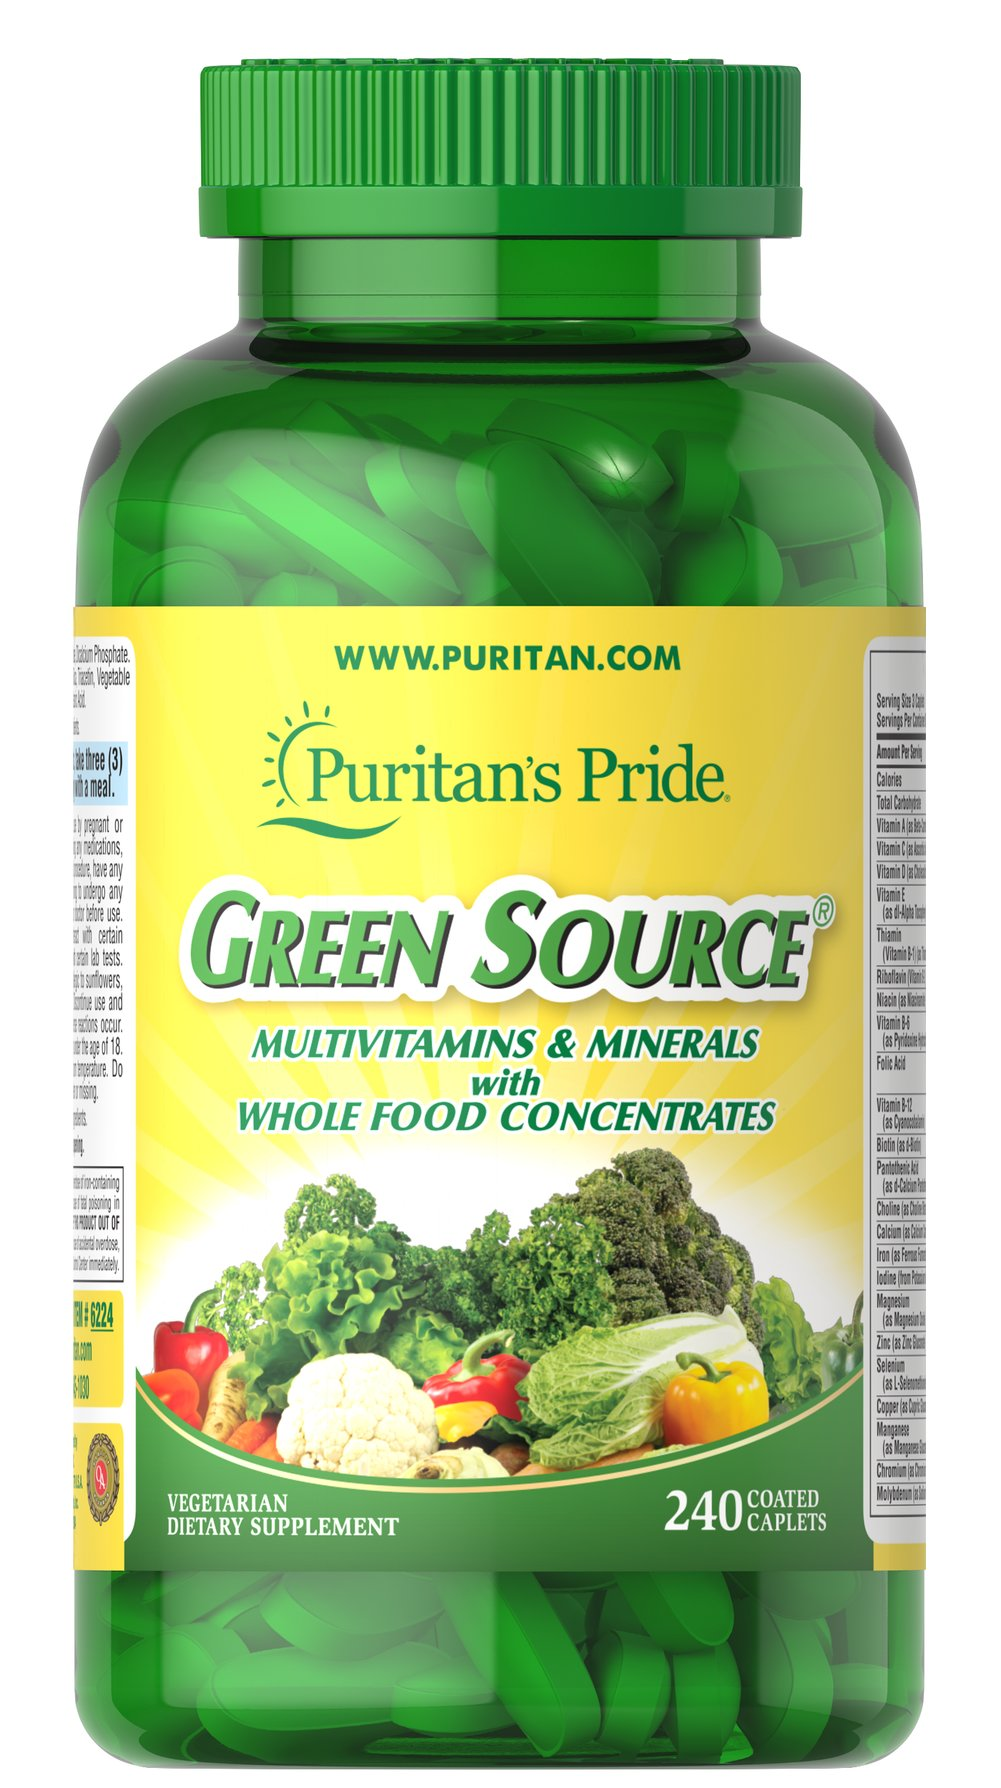 Green Source® Multivitamin & Minerals <p>This concentrated formula contains potent food source nutrients to provide essential vitamins, minerals, enzymes and amino acids. It also provides all the naturally occurring active constituents of whole foods.</p> 240 Caplets  $59.99